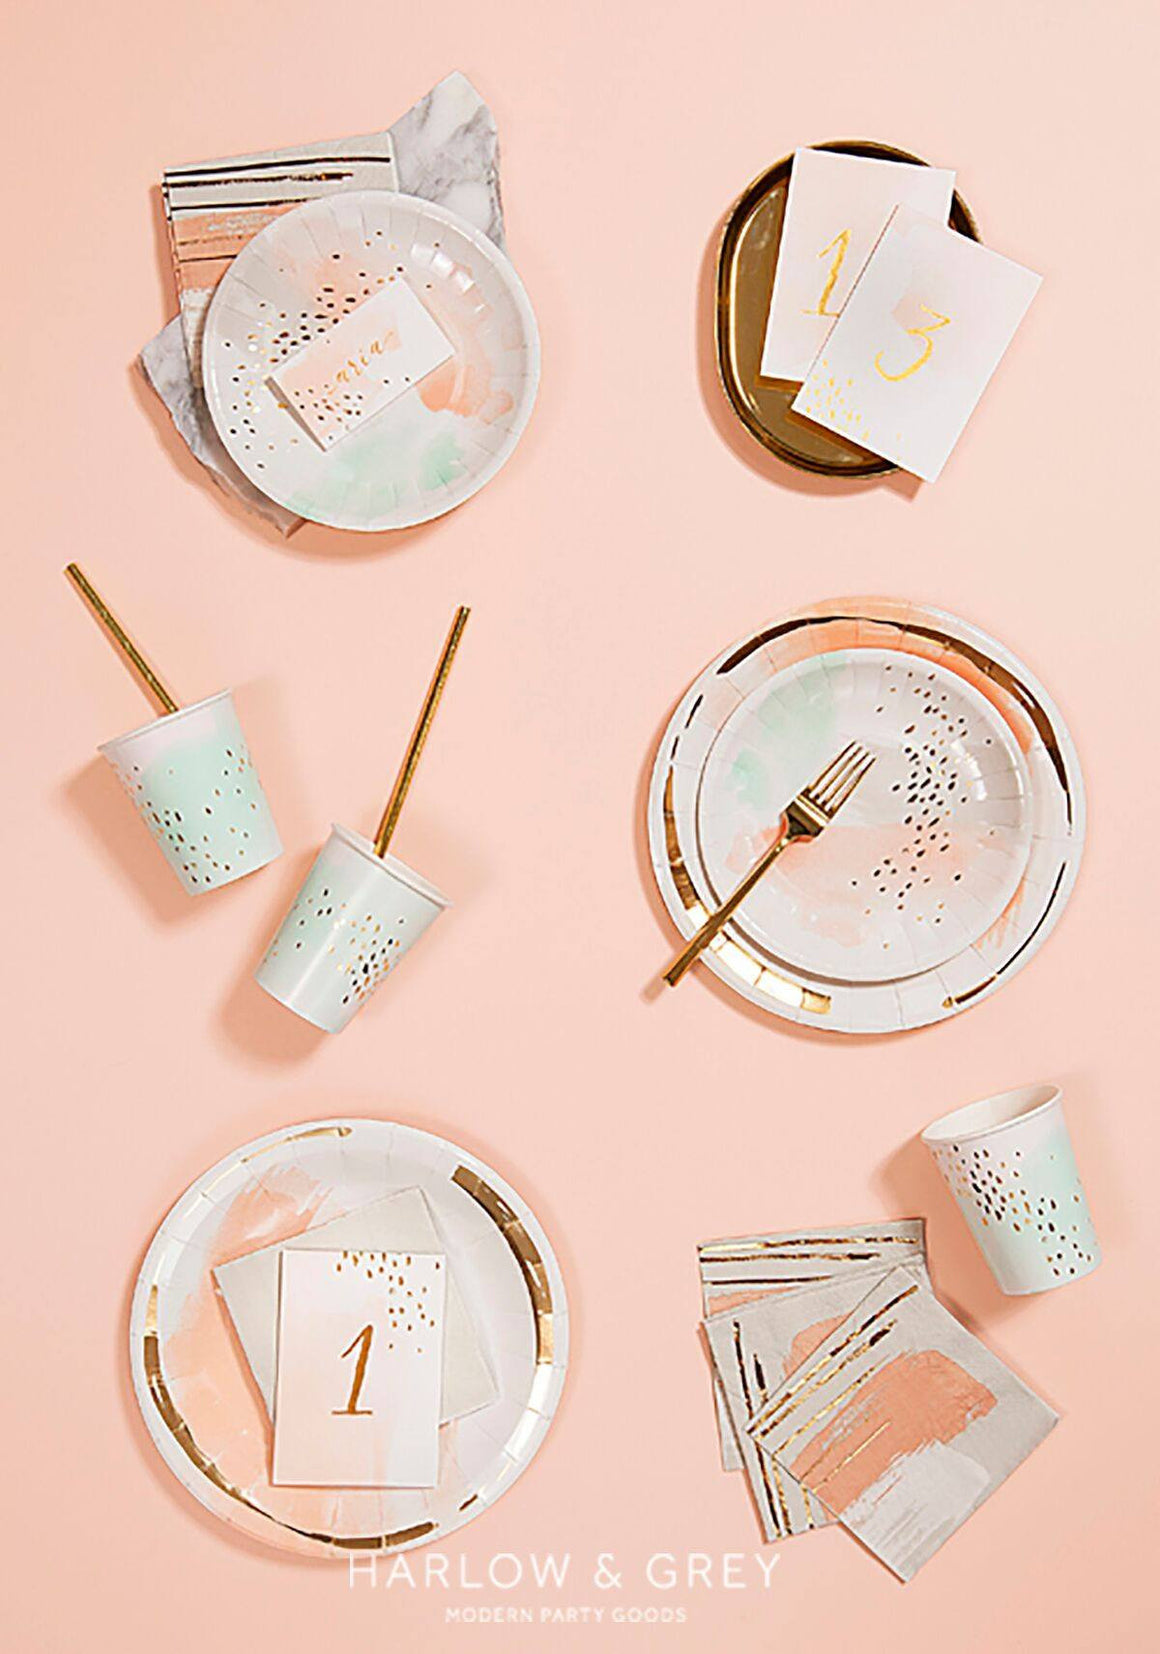 CUPS - DAYDREAM WATERCOLOUR, CUPS, HARLOW & GREY - Bon + Co. Party Studio